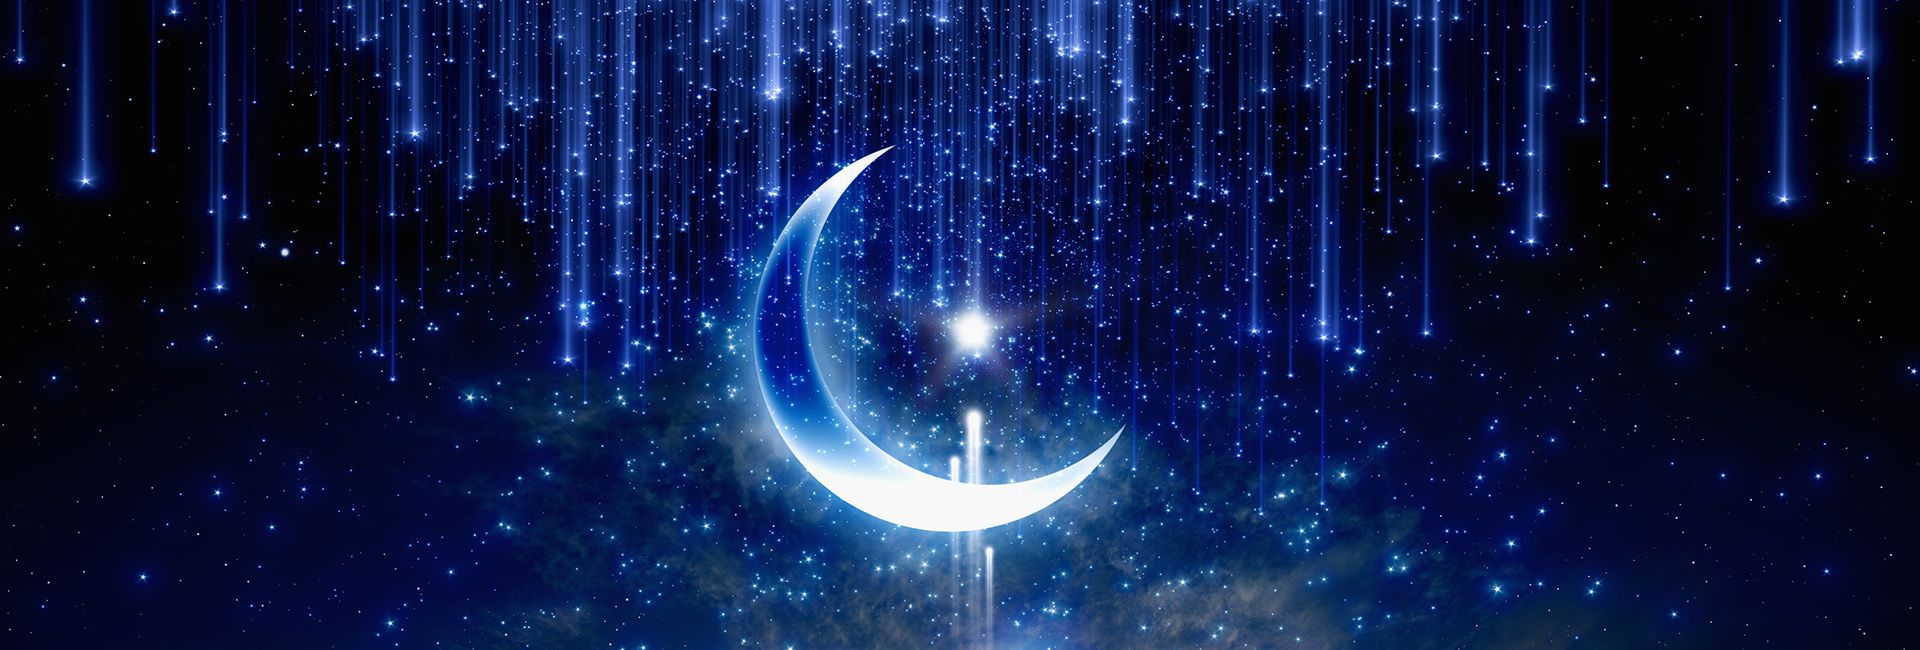 Star Moon Space Blue Background